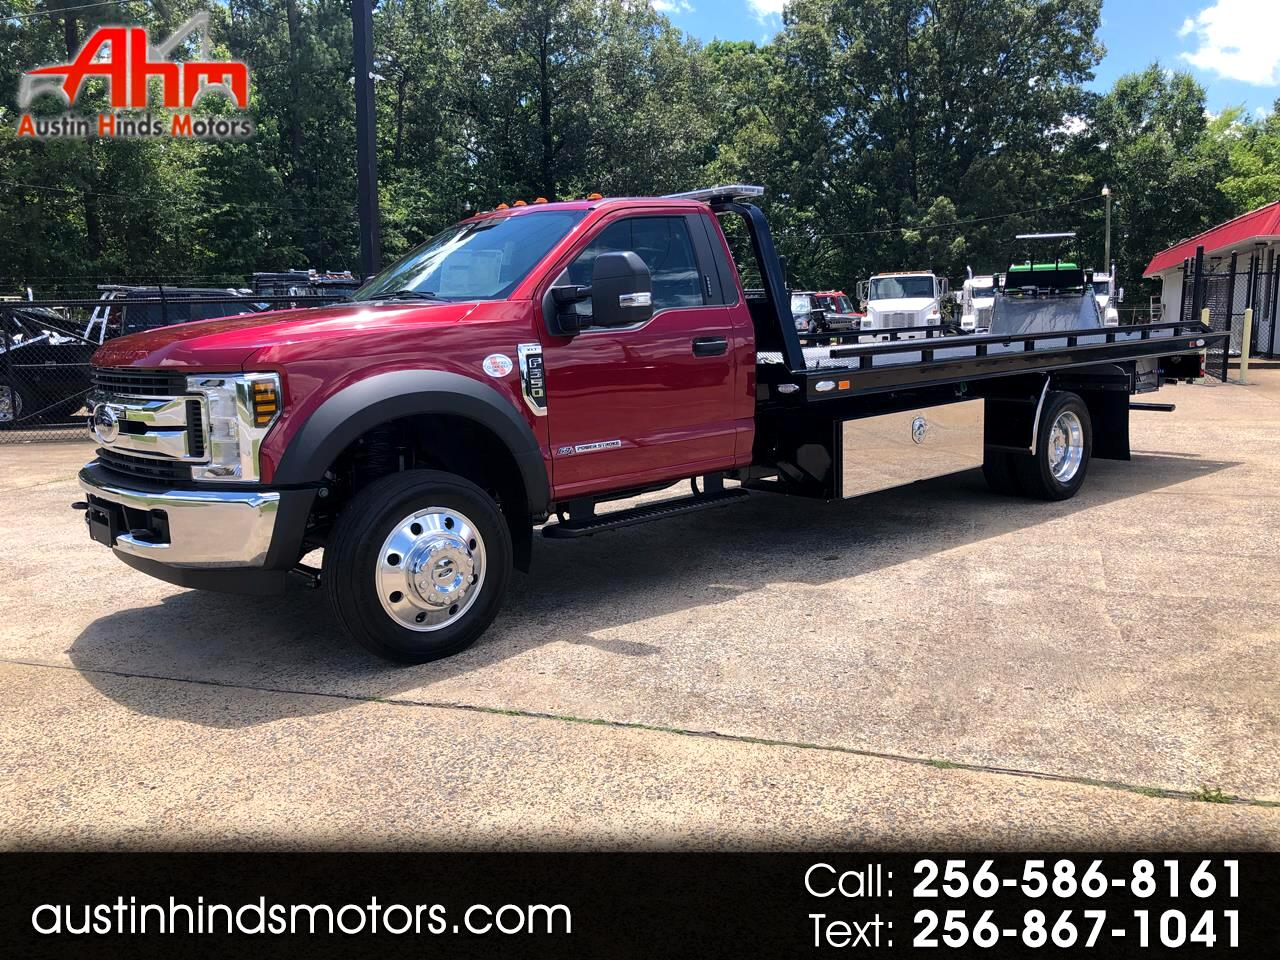 2019 Ford F-550 Regular Cab DRW 2WD